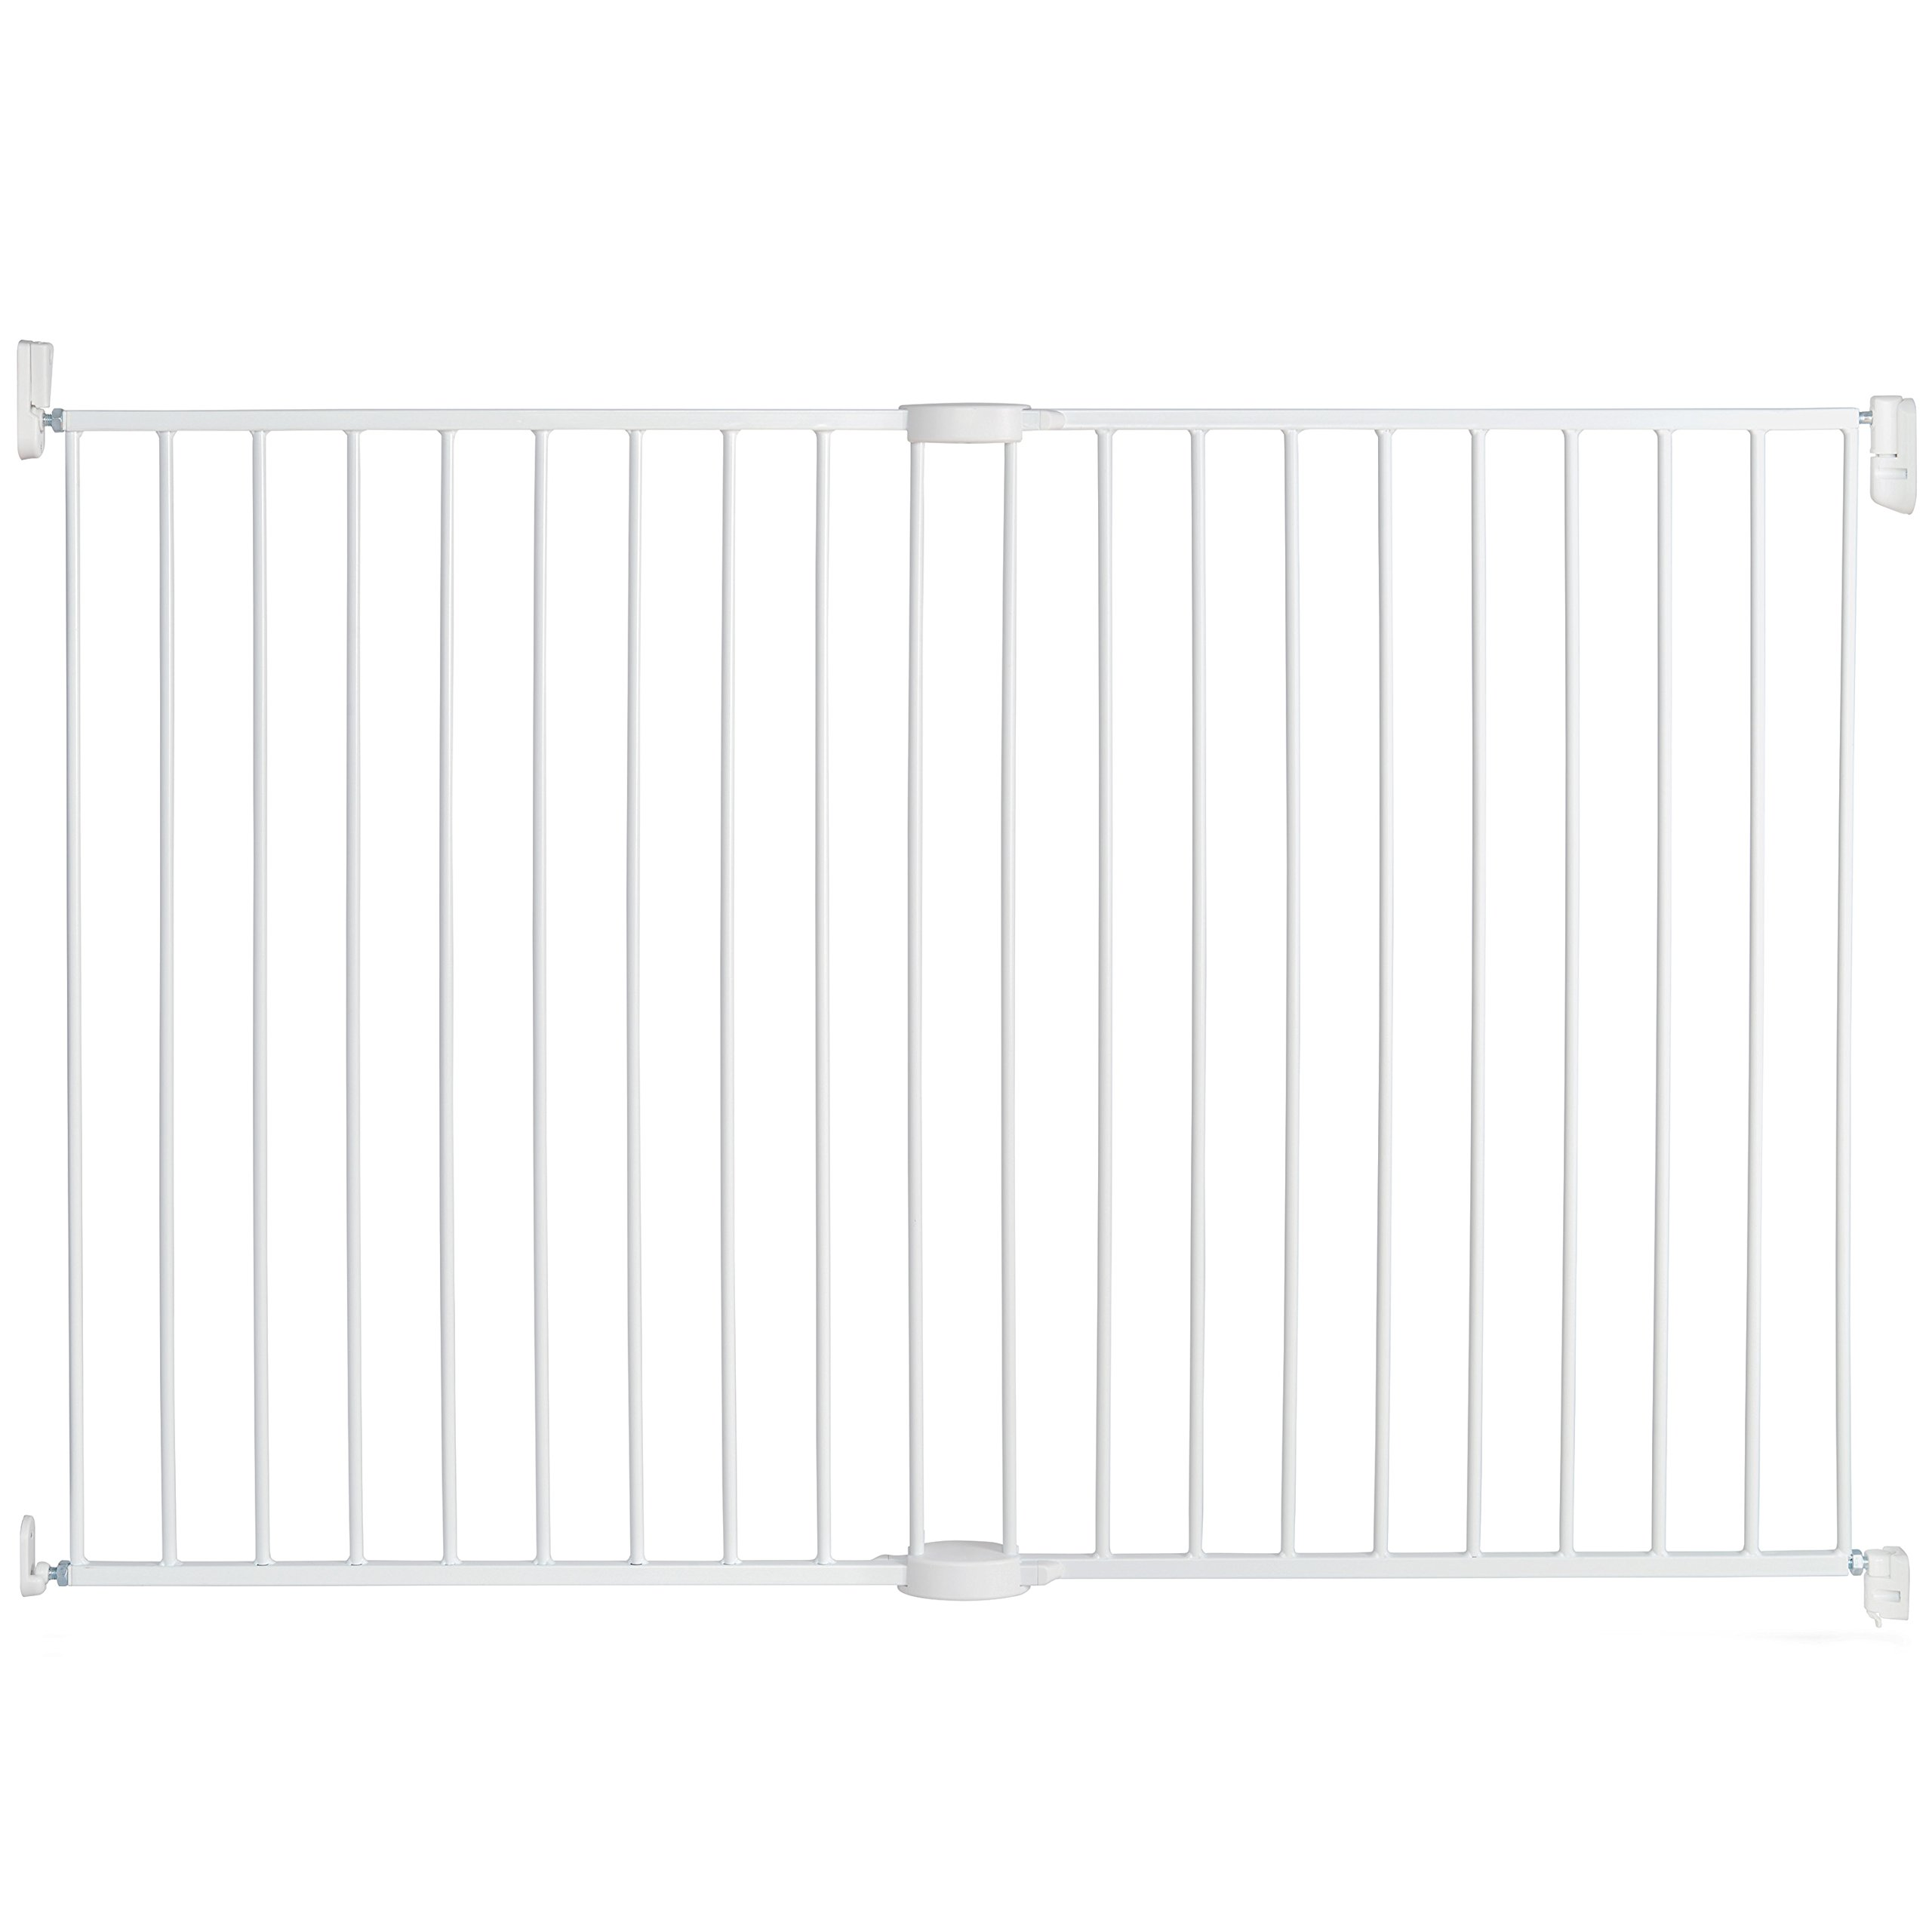 Munchkin Extending XL Tall and Wide Hardware Baby Gate, Extends 33'' - 56'' Wide, White, Model MK0004 by Munchkin